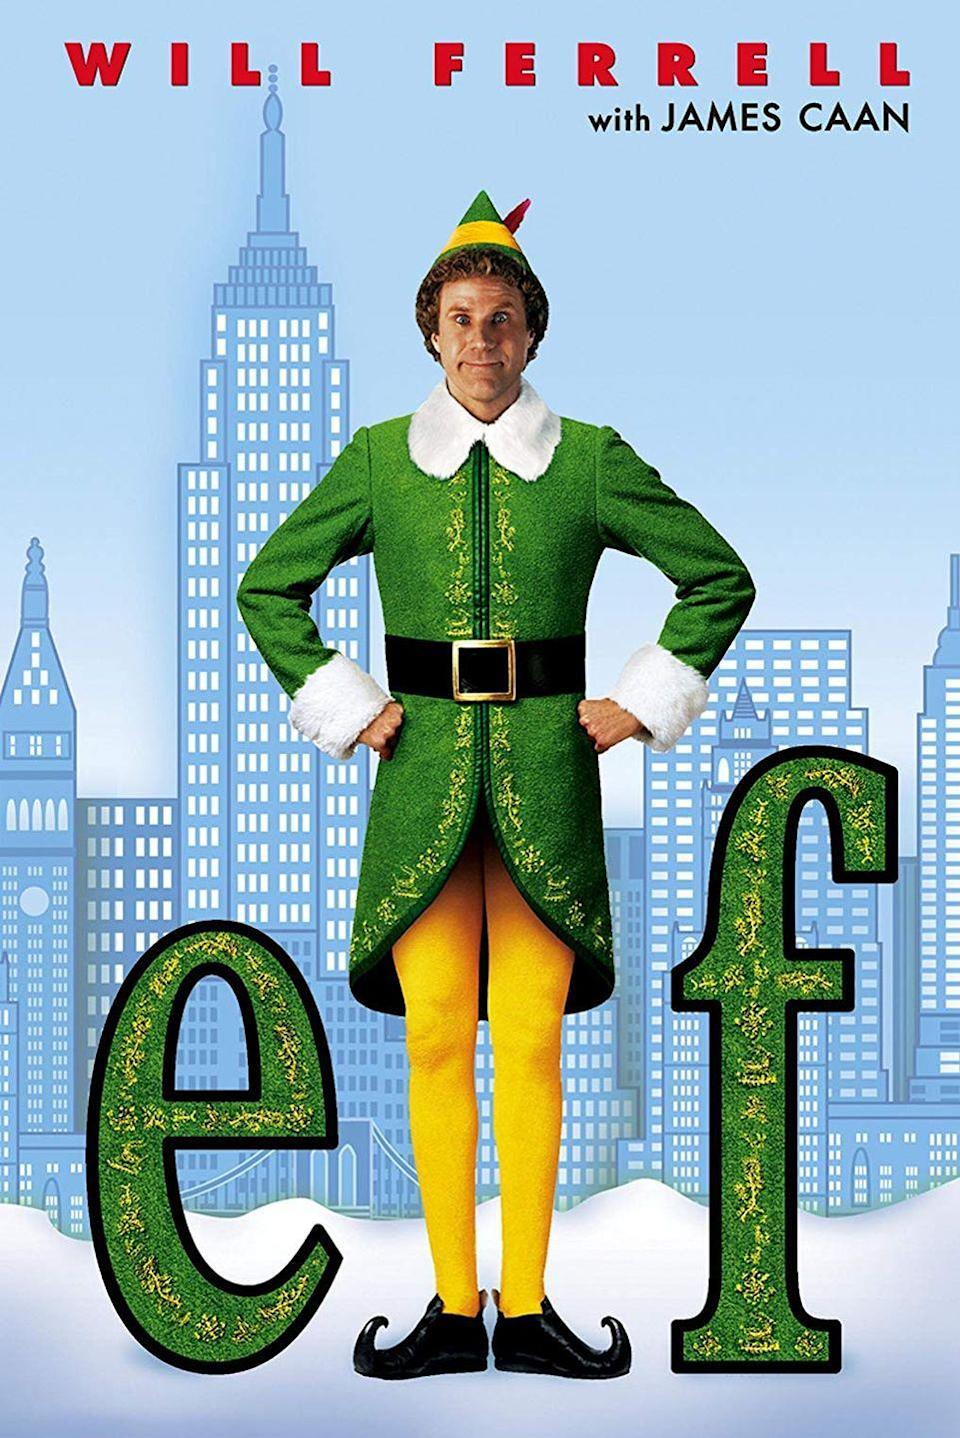 """<p>Even though this movie only came out in 2003, its tale of a human man raised as an elf making his way in New York City has quickly become a holiday classic.</p><p><a class=""""link rapid-noclick-resp"""" href=""""https://www.amazon.com/Elf-Will-Ferrell/dp/B0091VTNZC/?tag=syn-yahoo-20&ascsubtag=%5Bartid%7C10055.g.1315%5Bsrc%7Cyahoo-us"""" rel=""""nofollow noopener"""" target=""""_blank"""" data-ylk=""""slk:WATCH NOW"""">WATCH NOW</a></p>"""